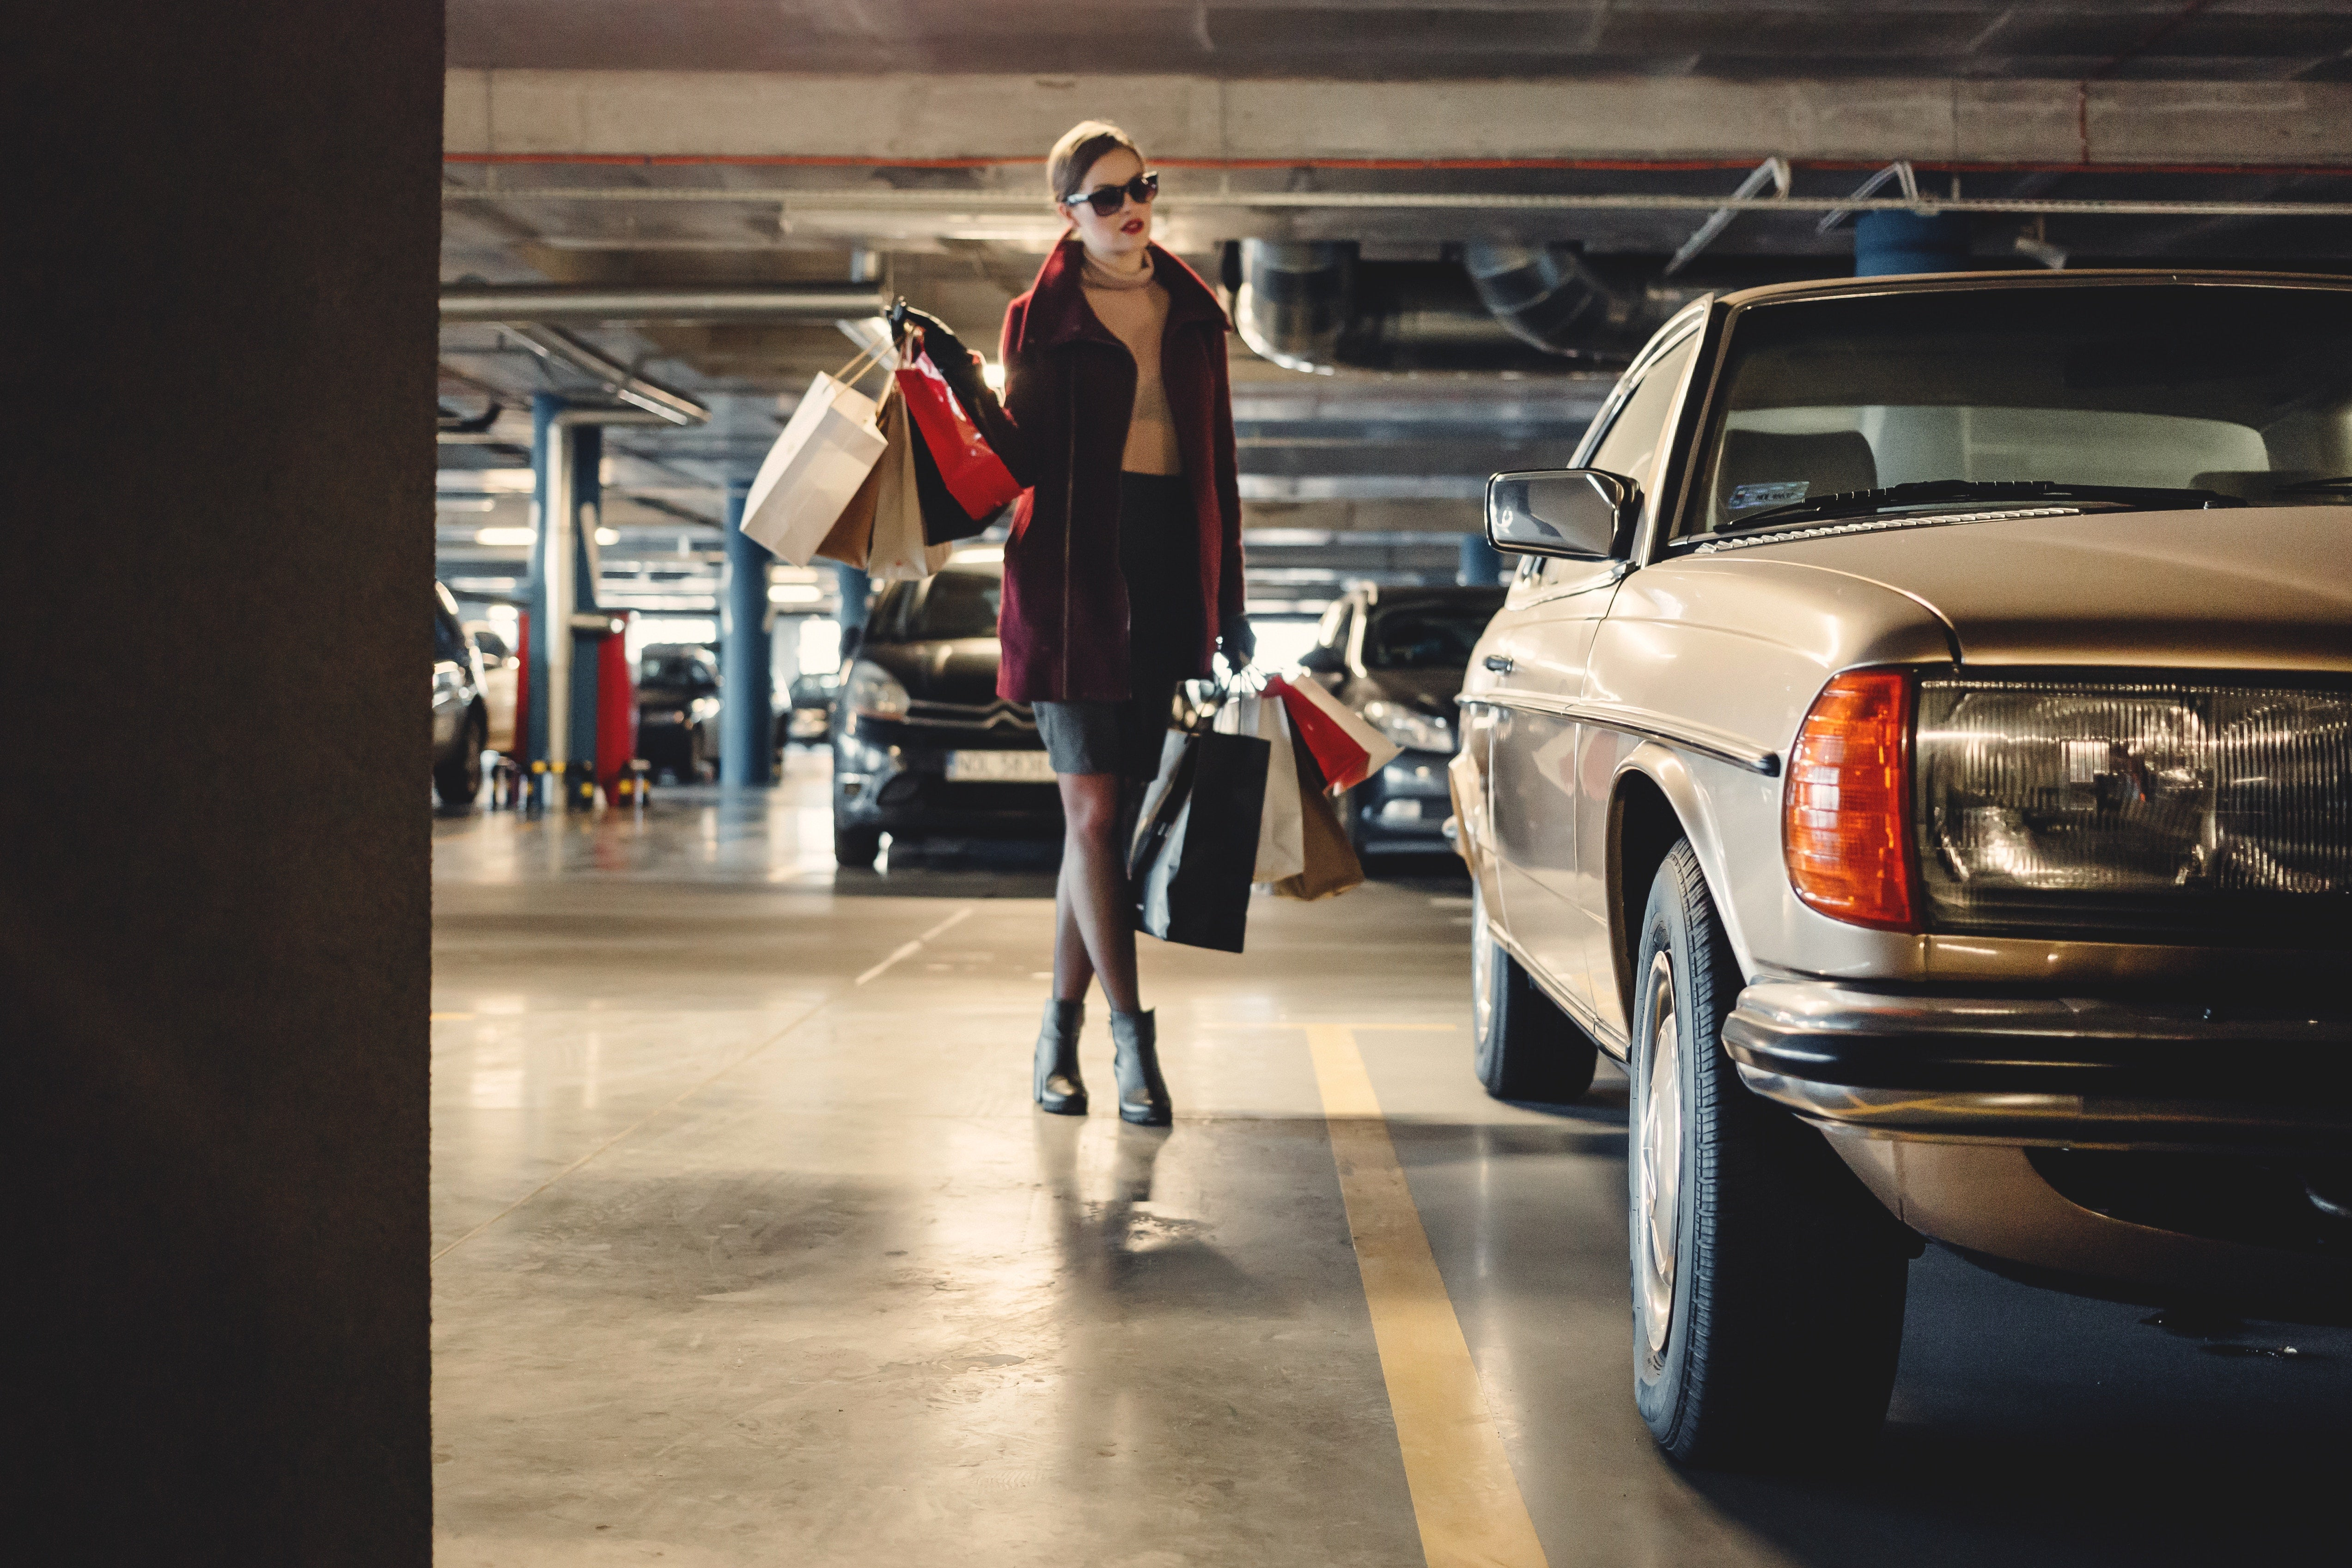 In a parking garage, a fashionable woman carries bags to a car.